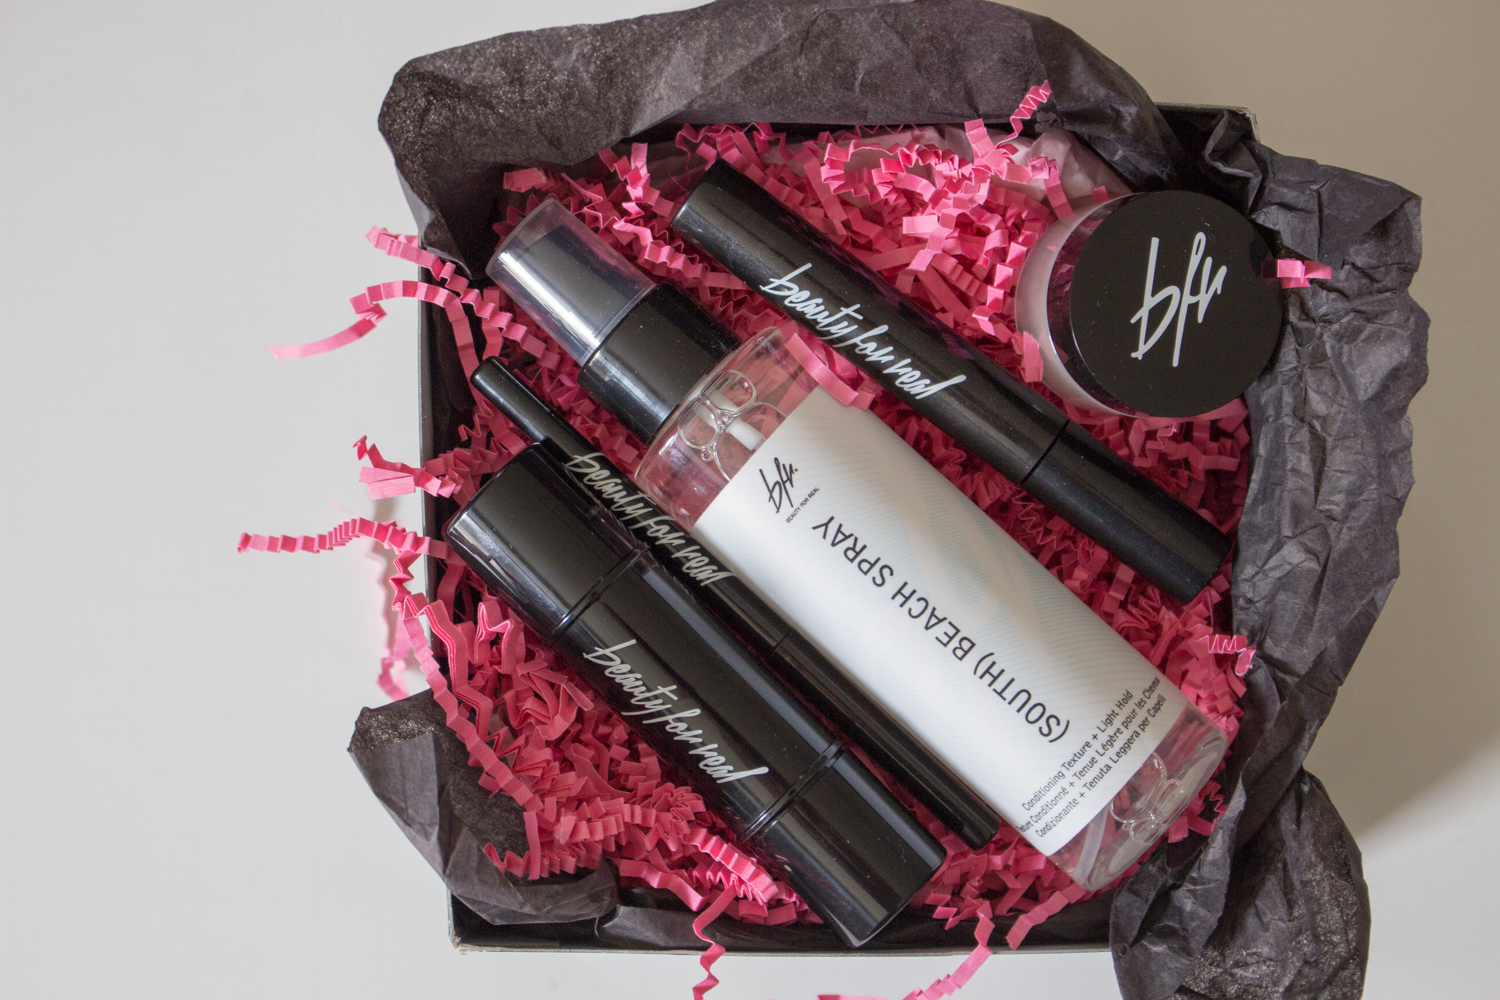 Best New Makeup Line to Try